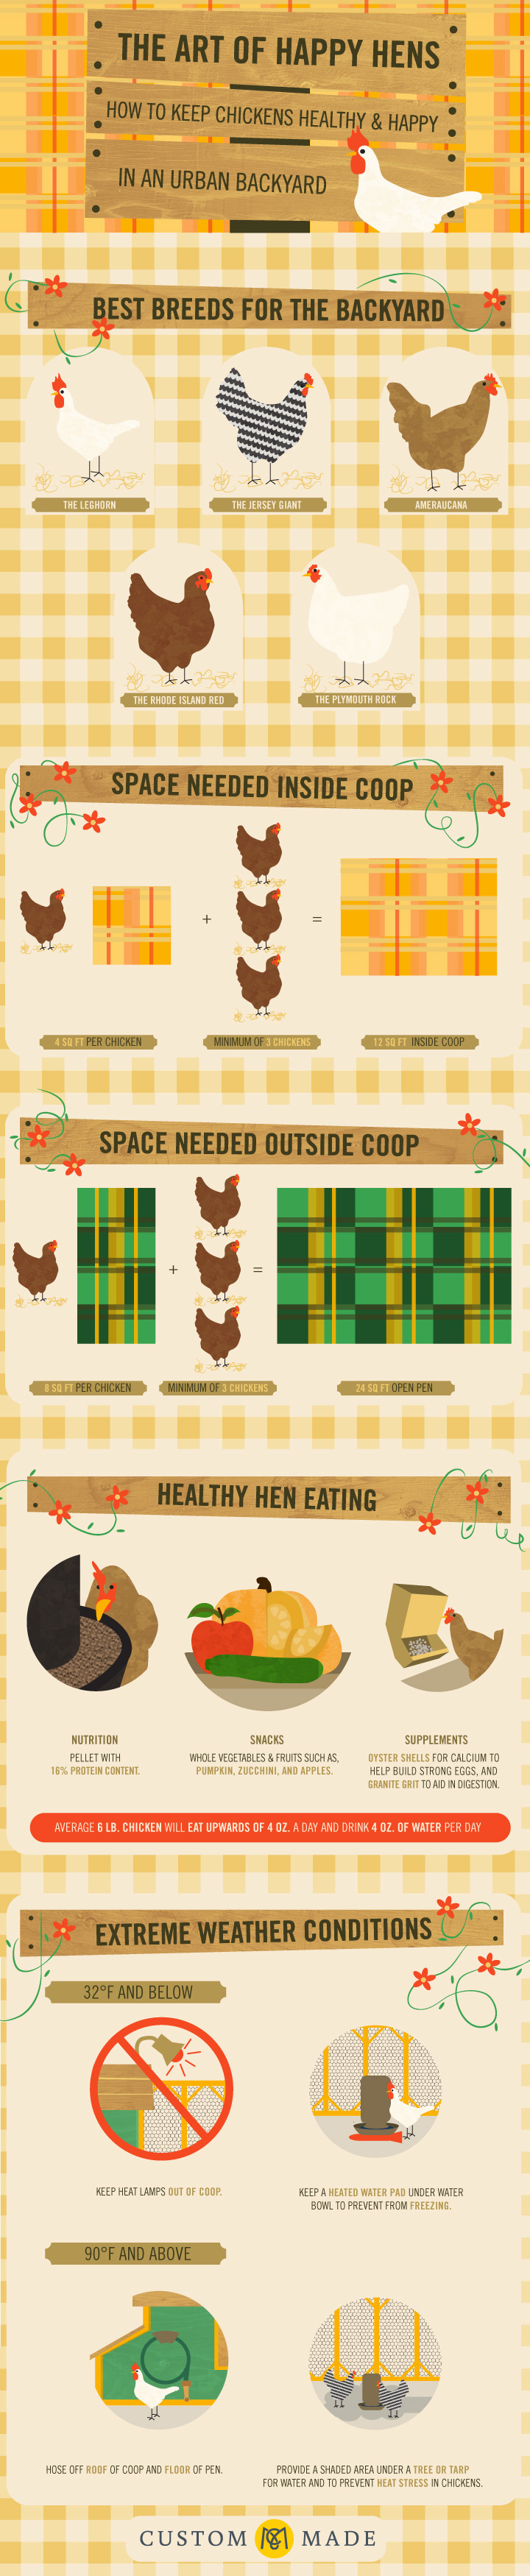 The Art of Happy Hens -- How to Keep Chickens Healthy and Happy in An Urban Backyard